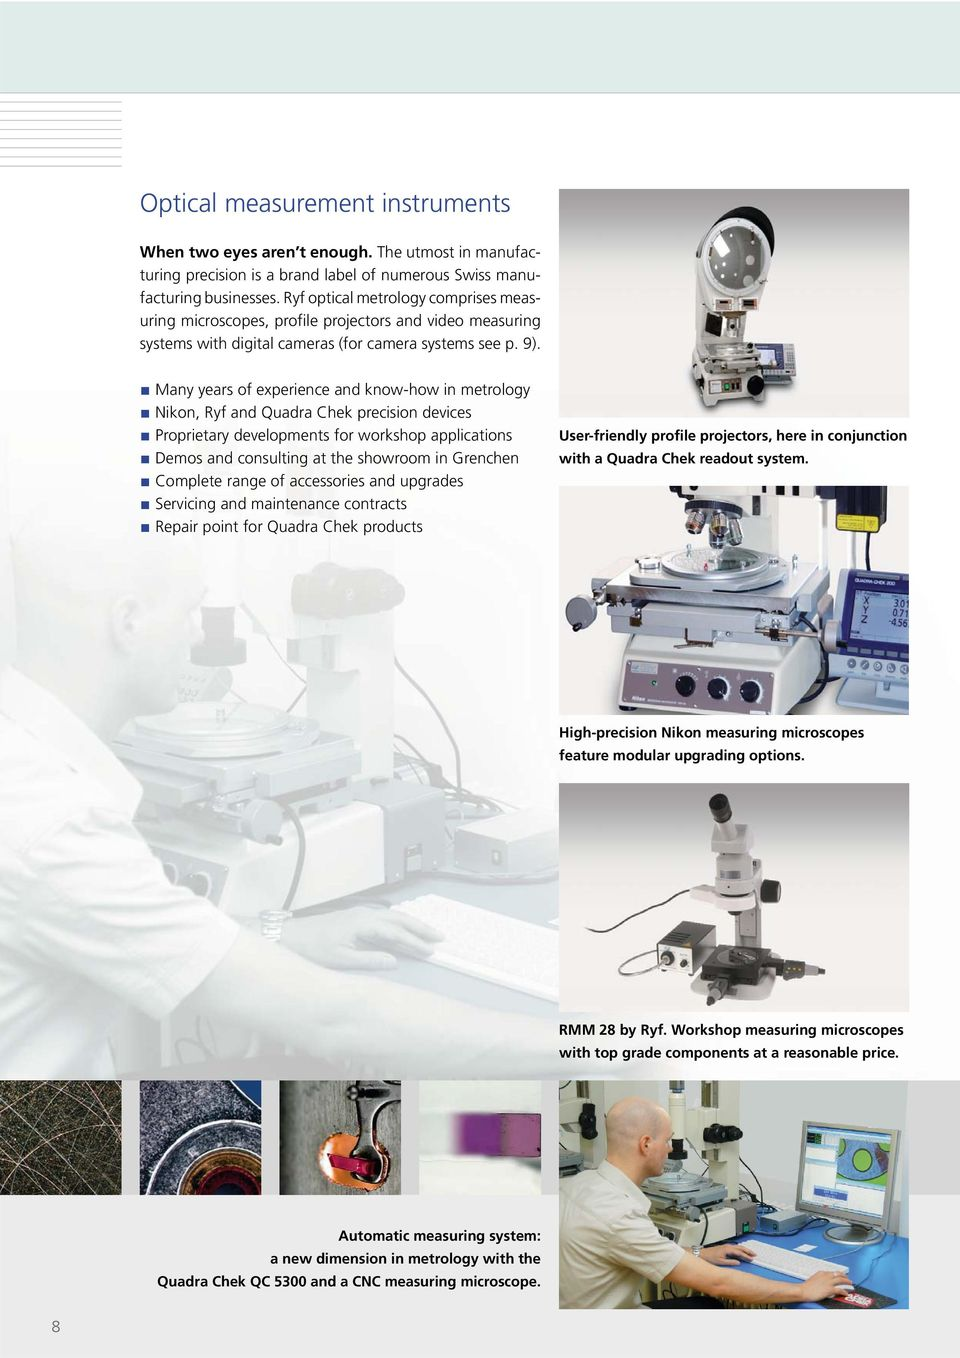 Many years of experience and know-how in metrology Nikon, Ryf and Quadra Chek precision devices Proprietary developments for workshop applications Demos and consulting at the showroom in Grenchen